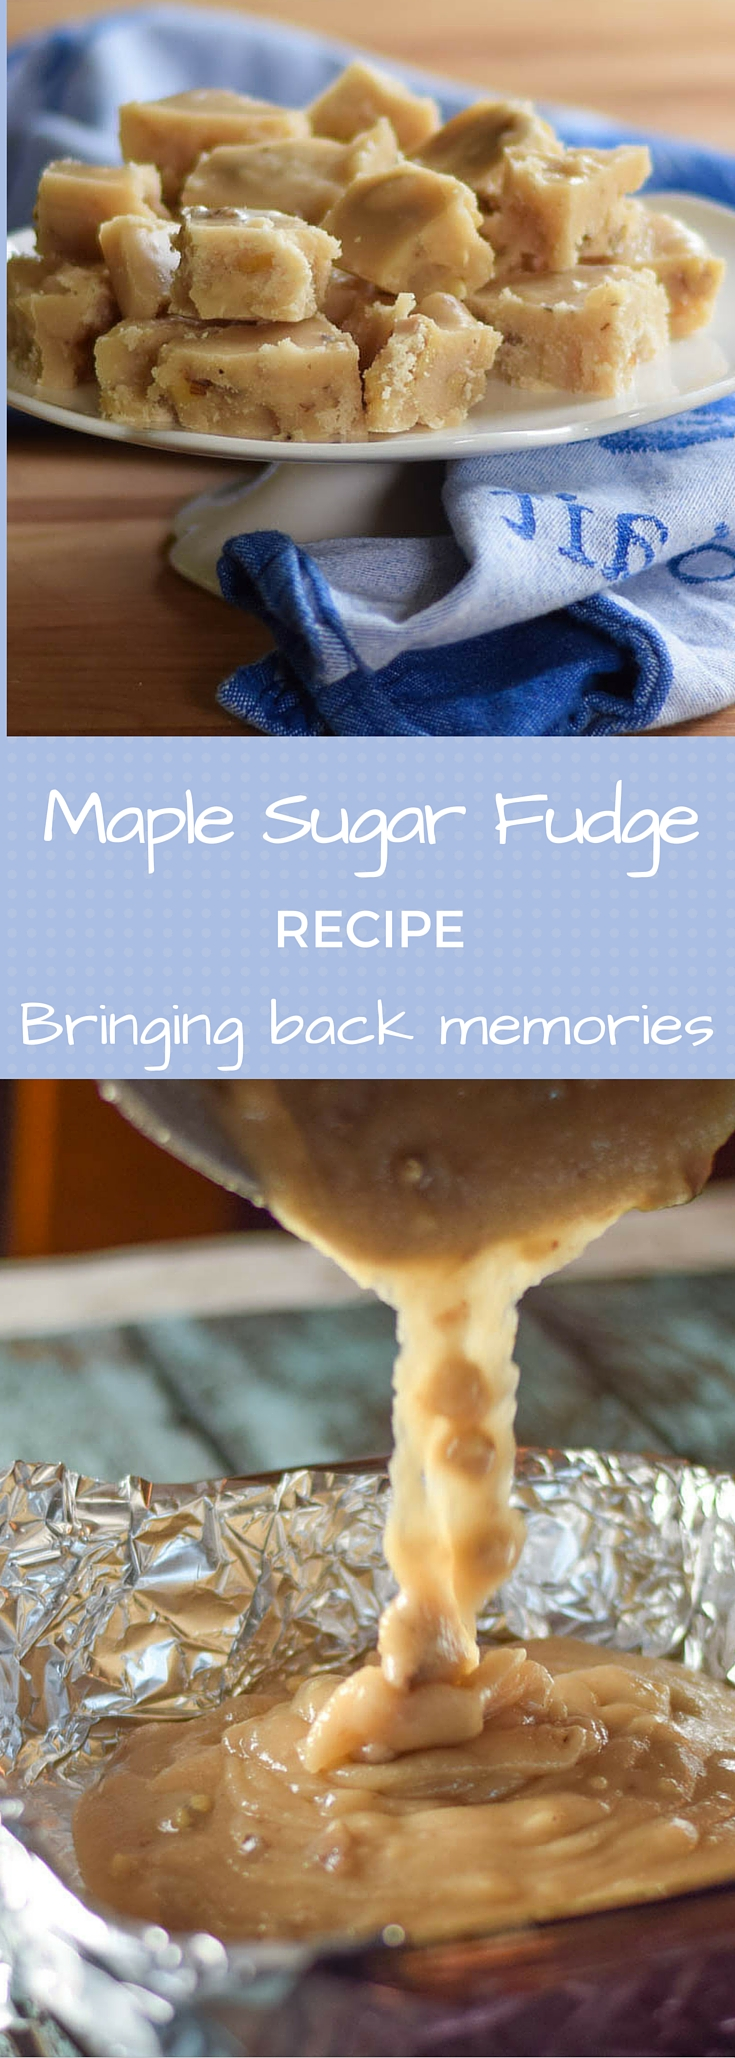 Maple Sugar Fudge Recipe